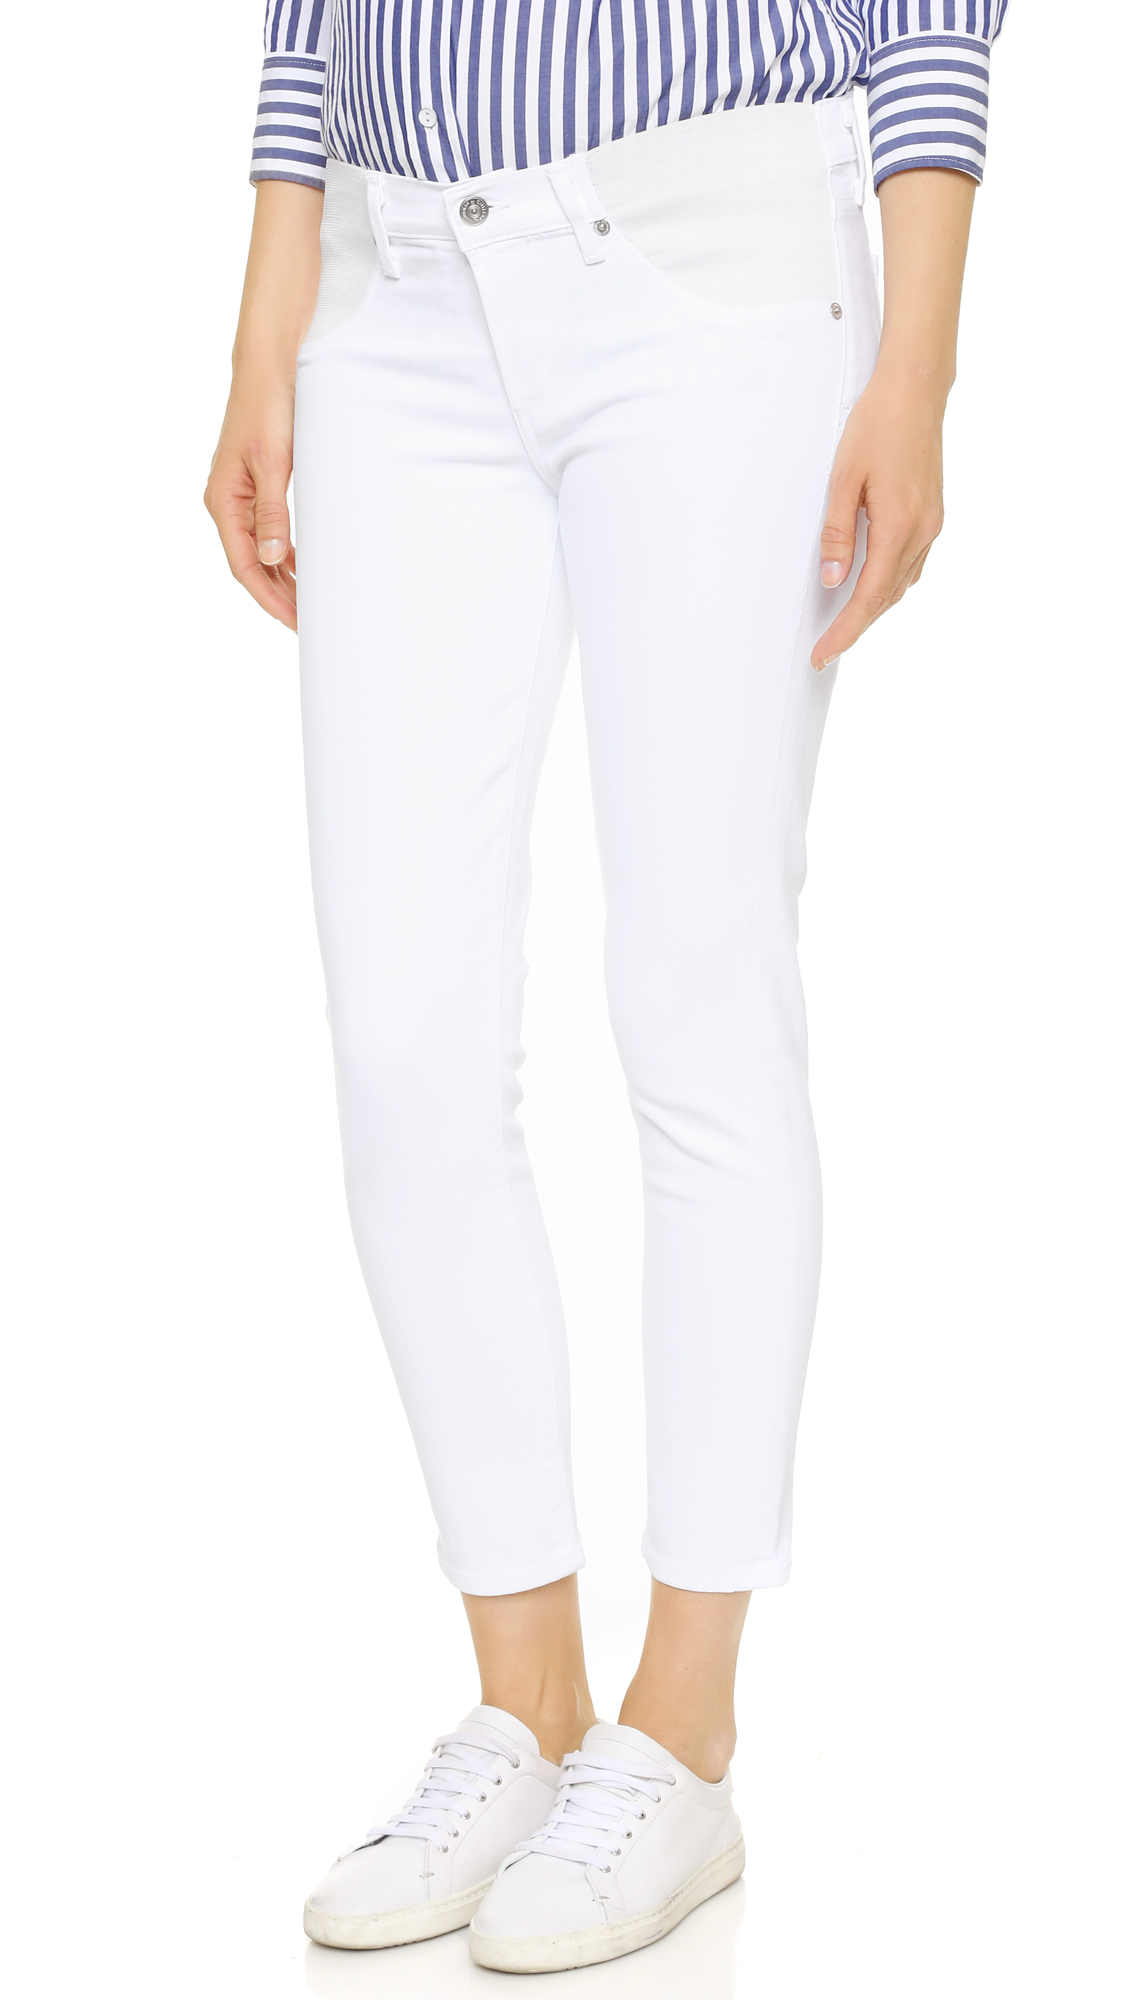 Avedon Below the Belly Ultra Ankle Skinny Jeans